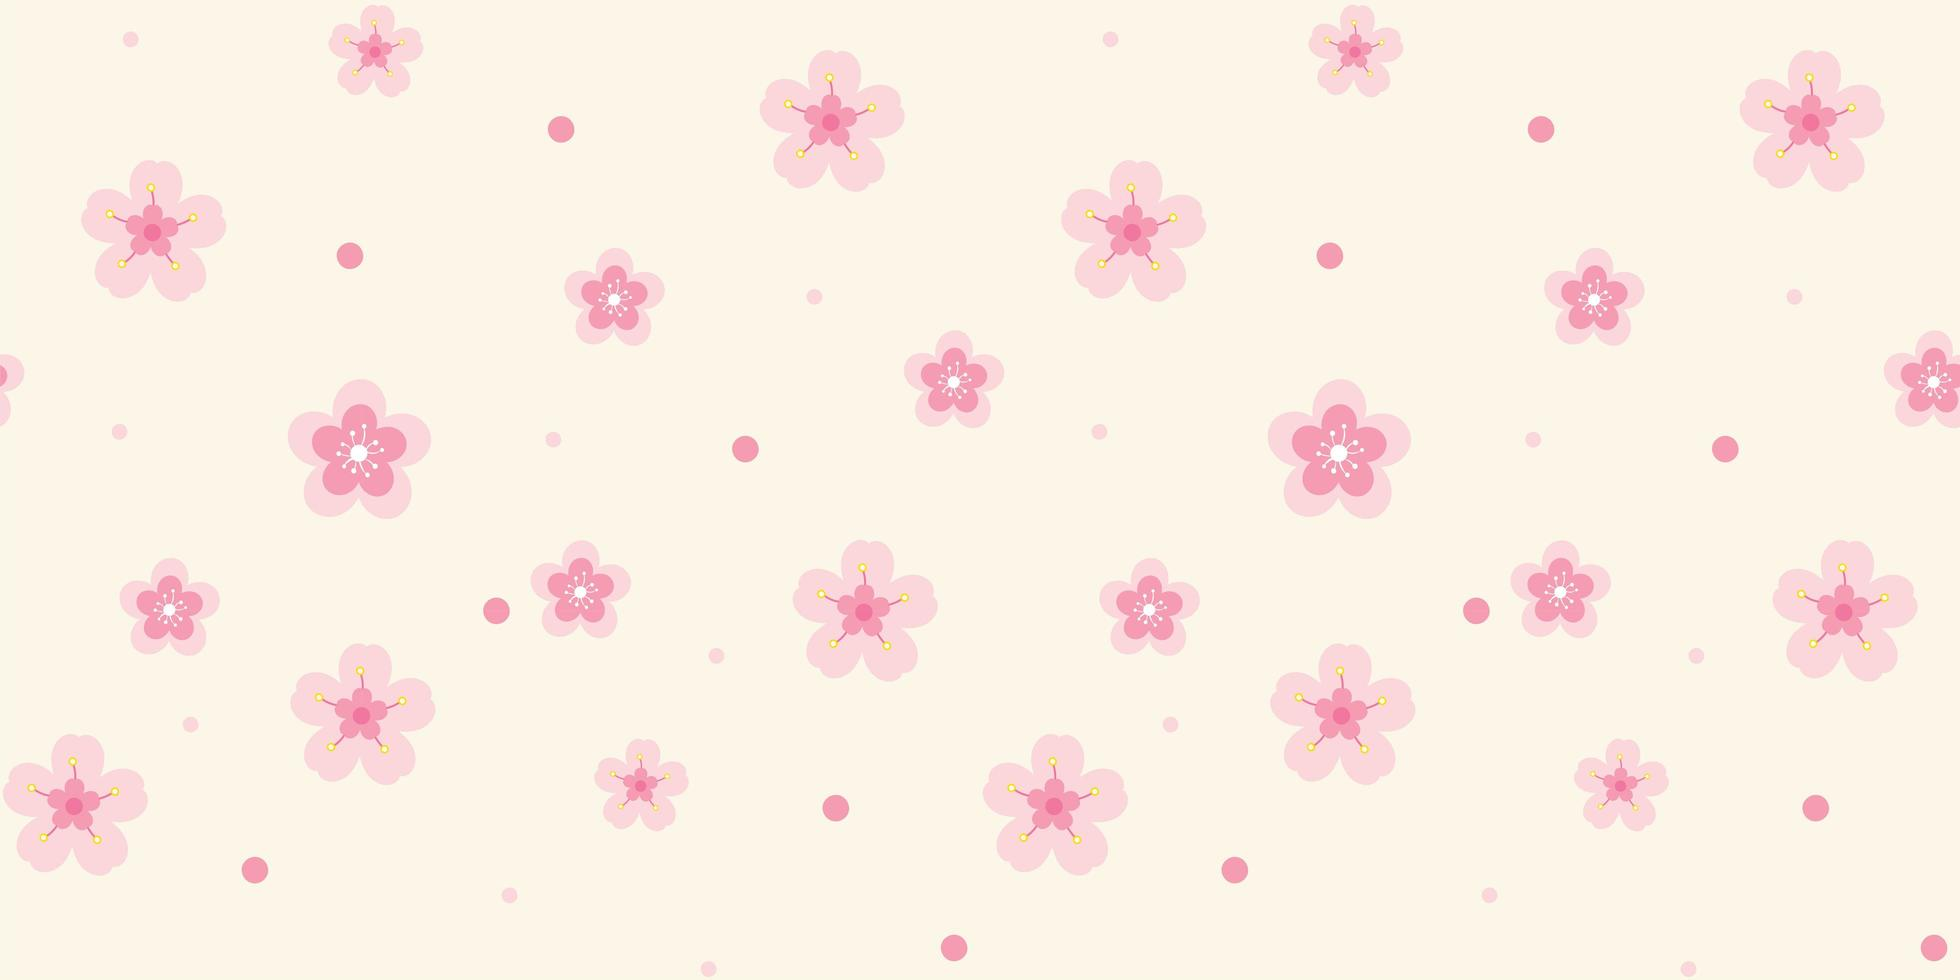 Pattern with Pink Flowers on Light Background vector